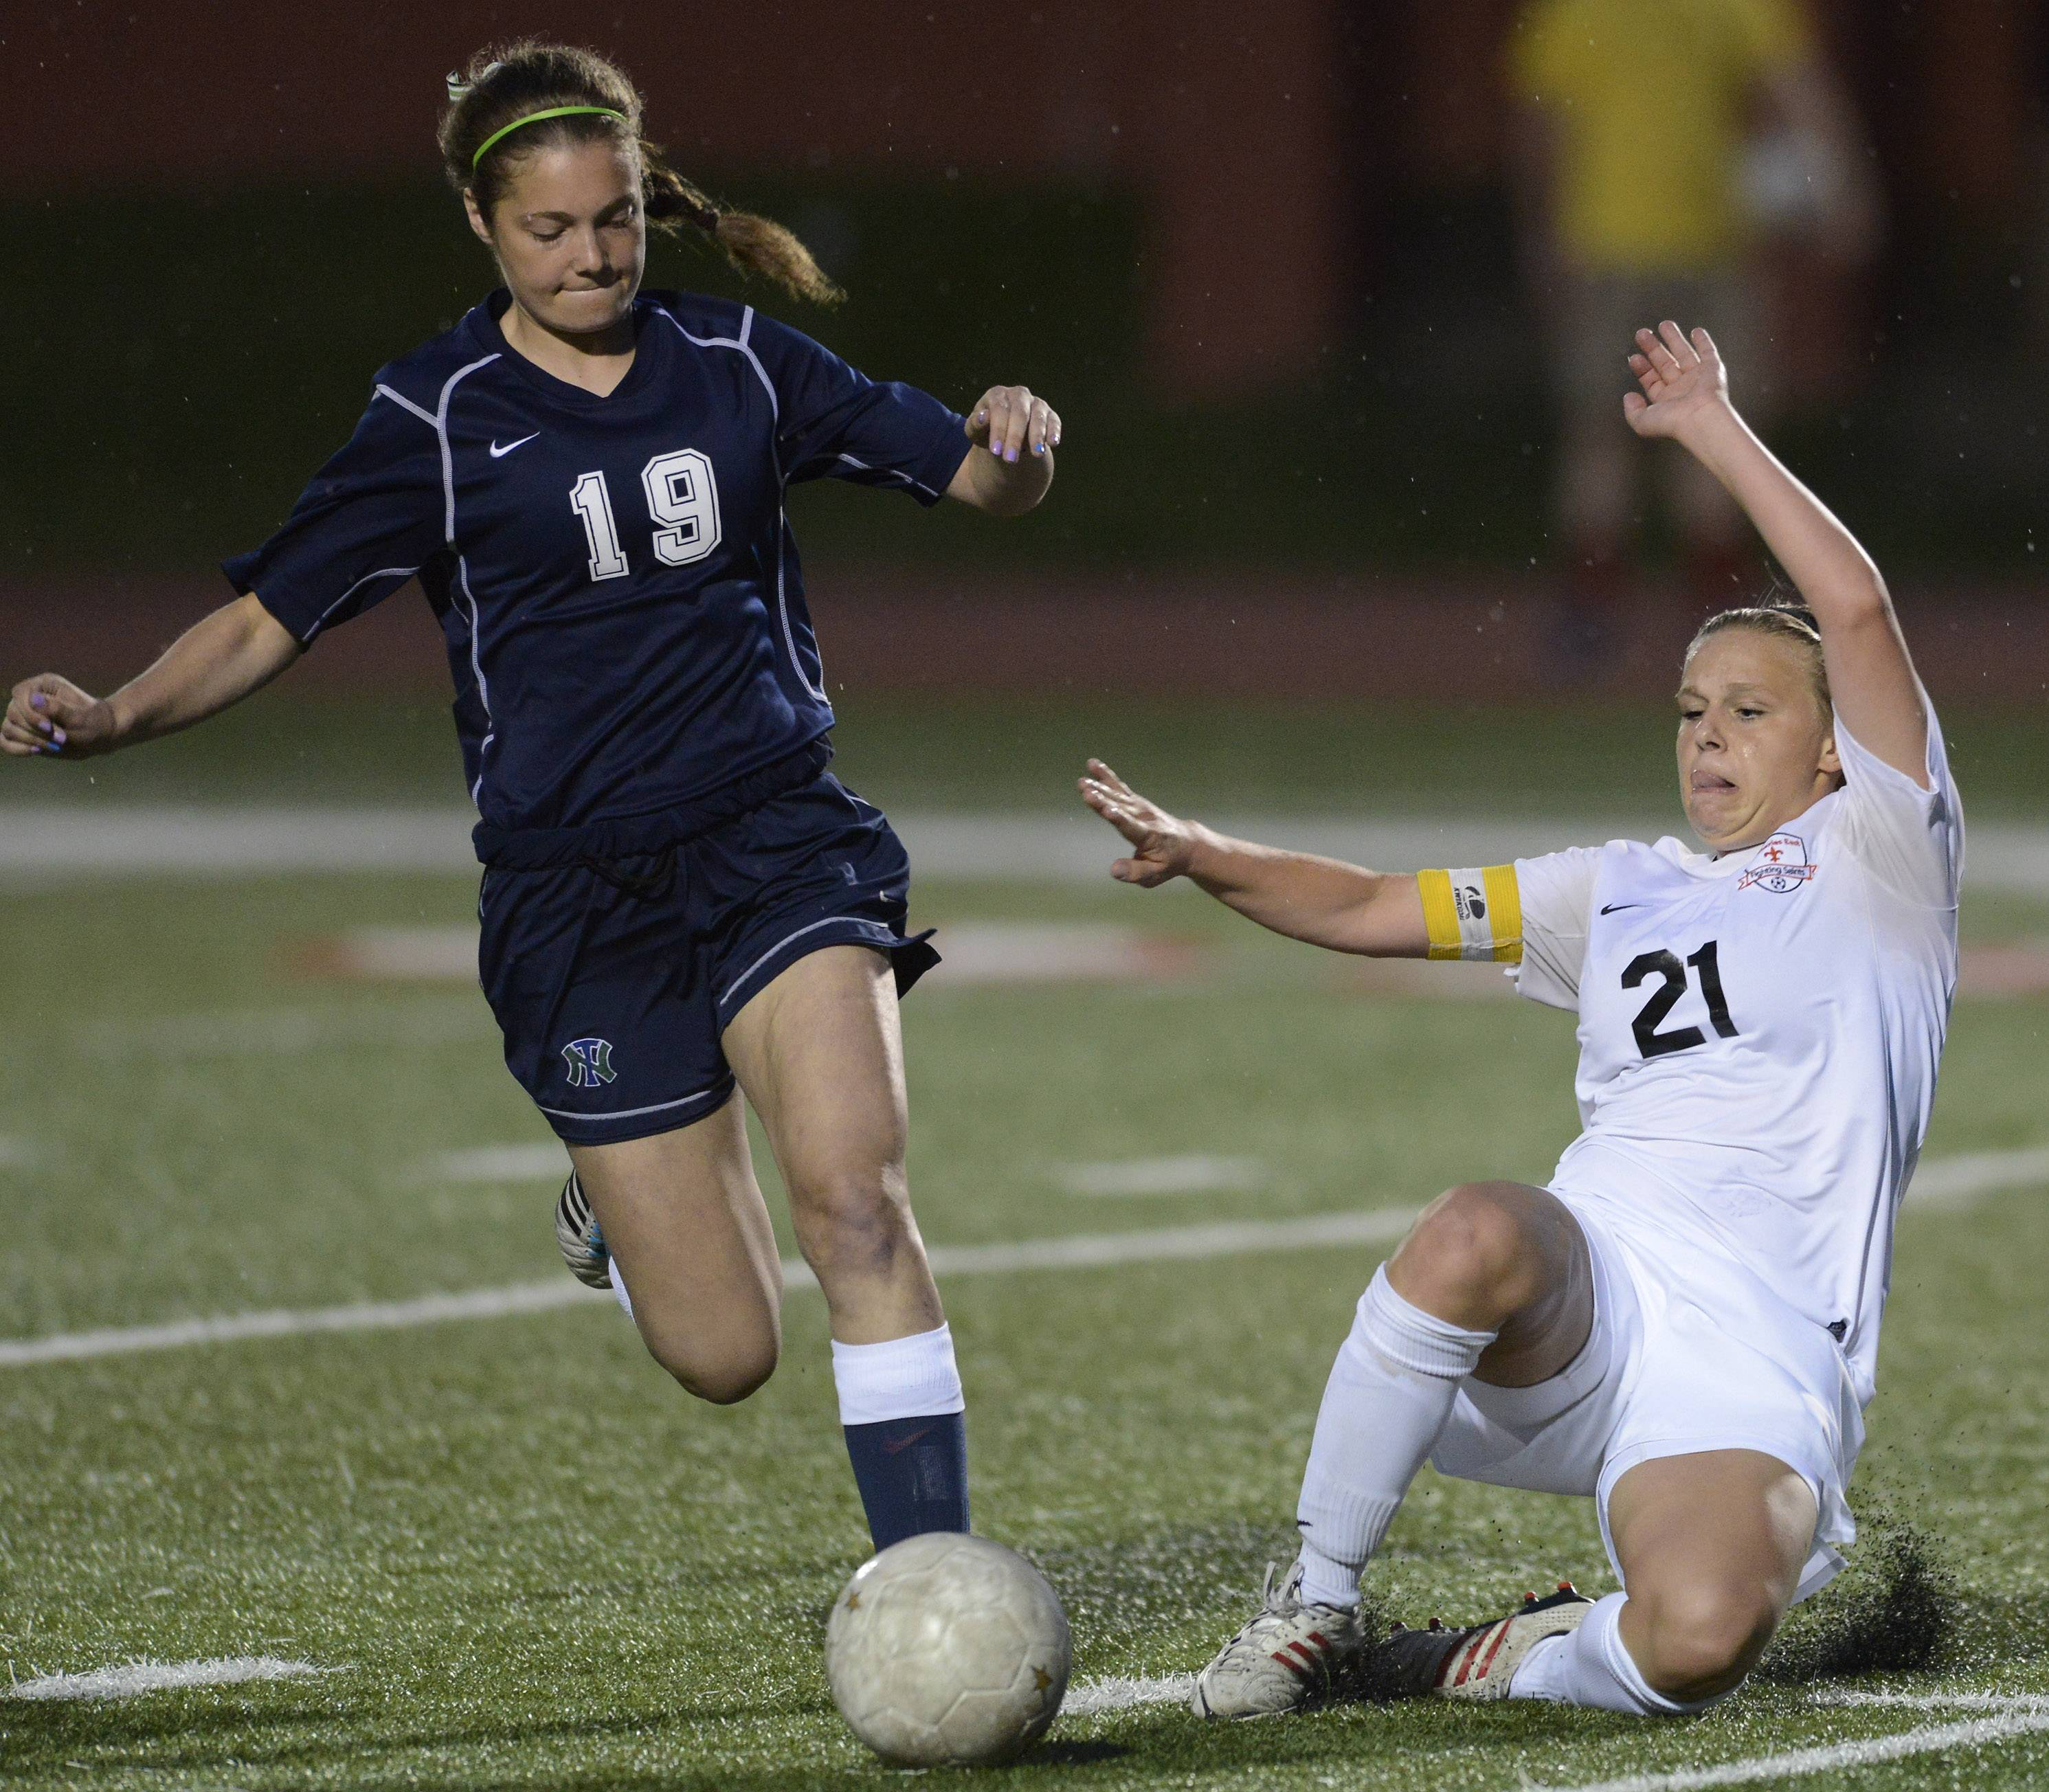 Amanda Hilton, right, of St. Charles East slides past New Trier's Gertie Harris to Maintain possession of the ball during the girls soccer Class 3A state final at North Central College in Naperville Saturday.